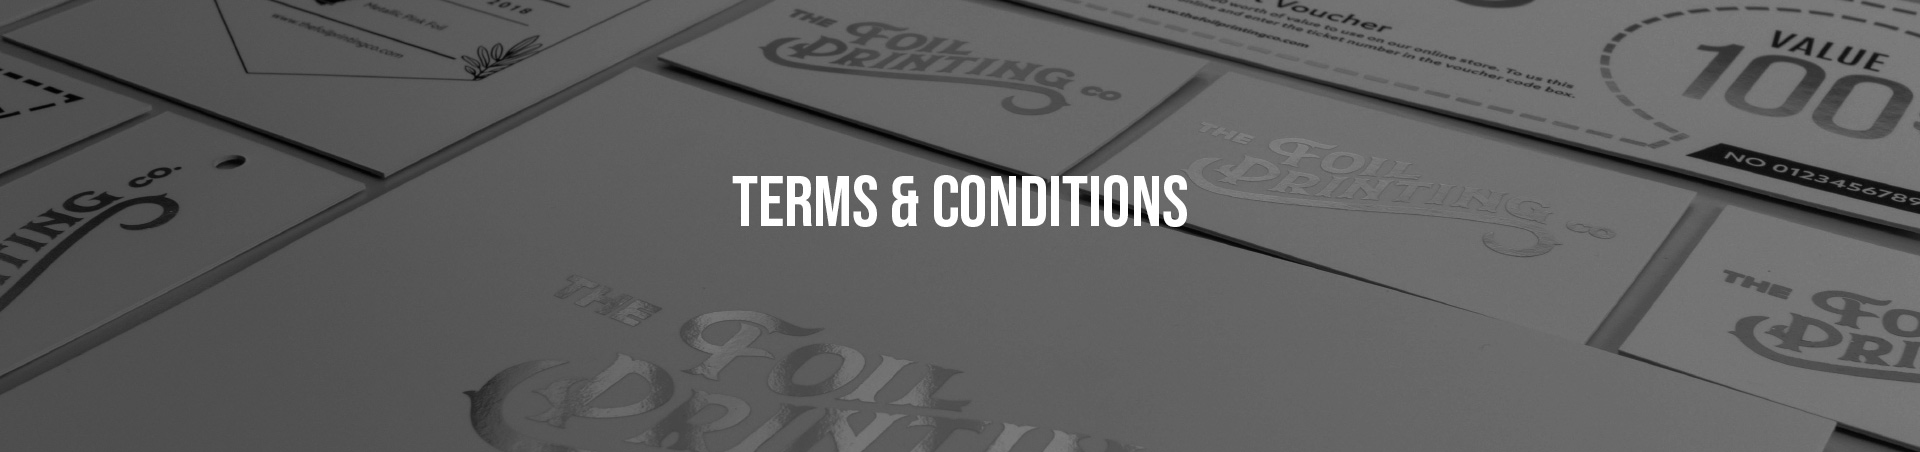 Terms & Conditions Banner